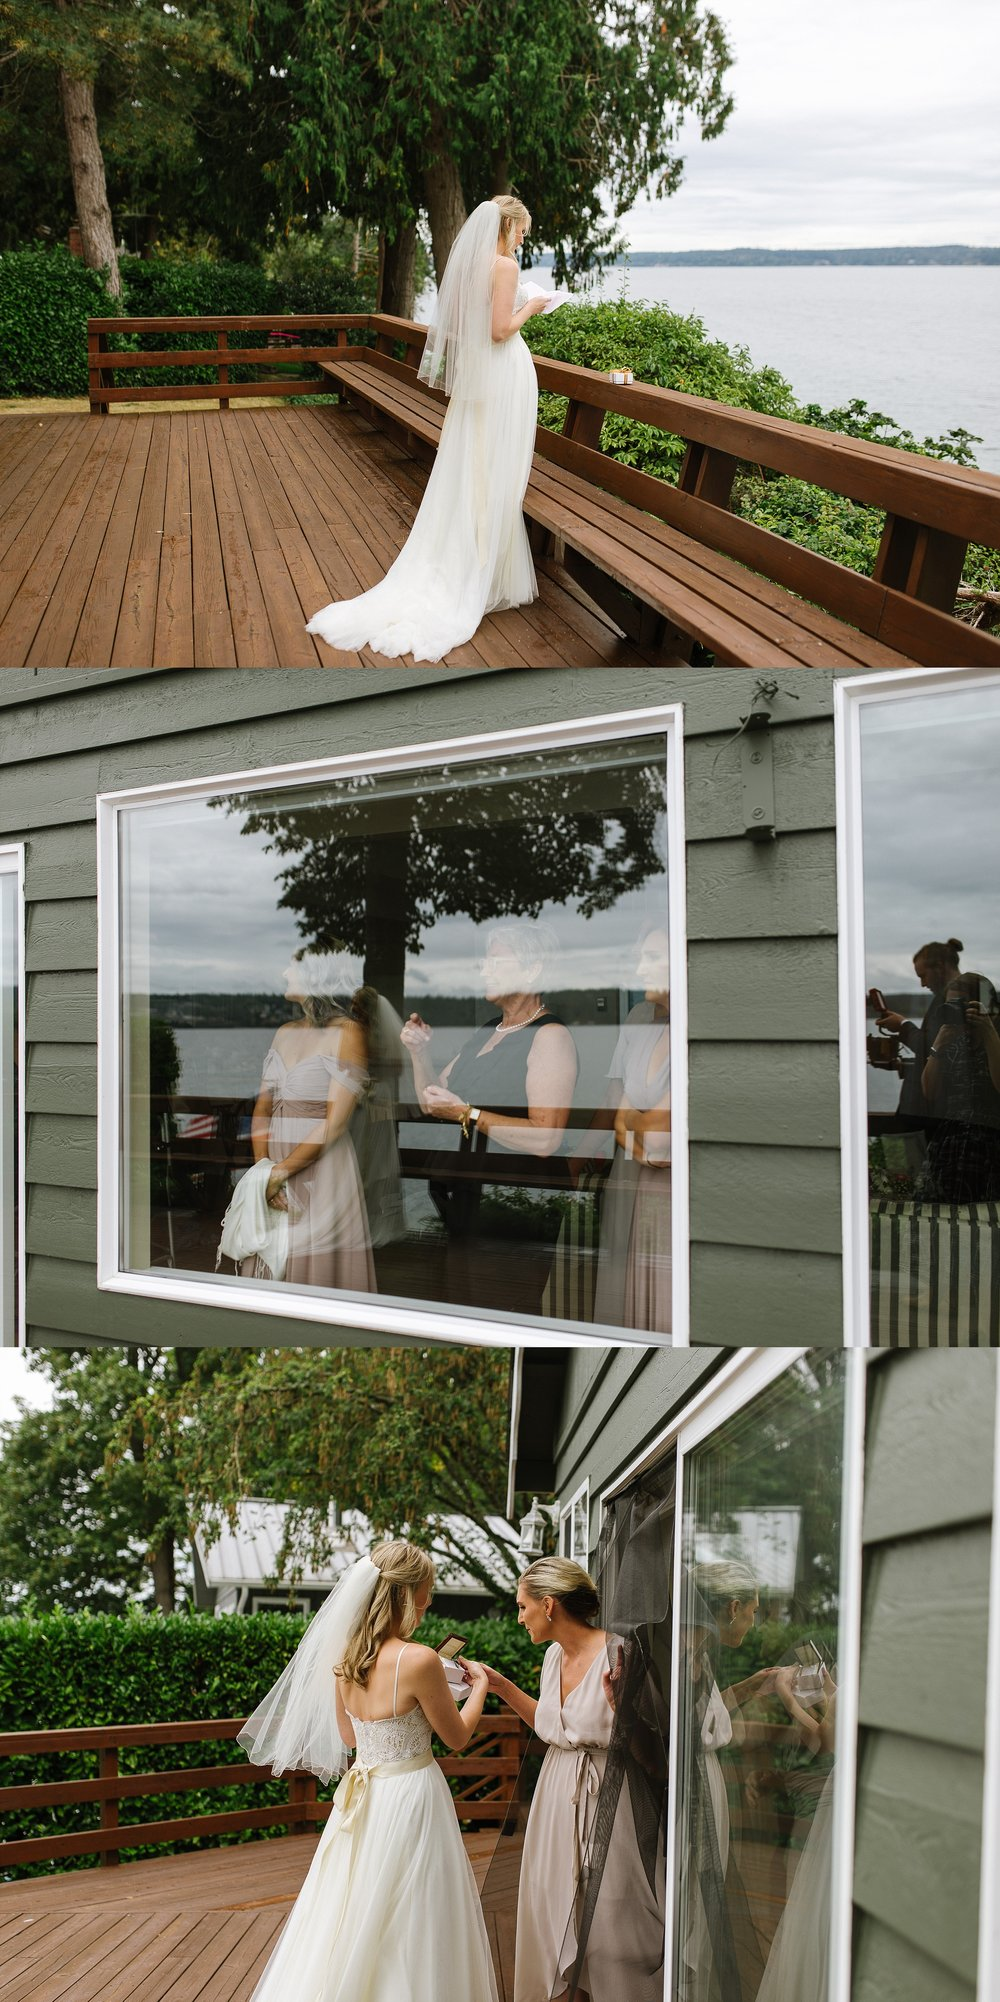 gig_harbor_washington_wedding_danacolin_cdp_0009.jpg